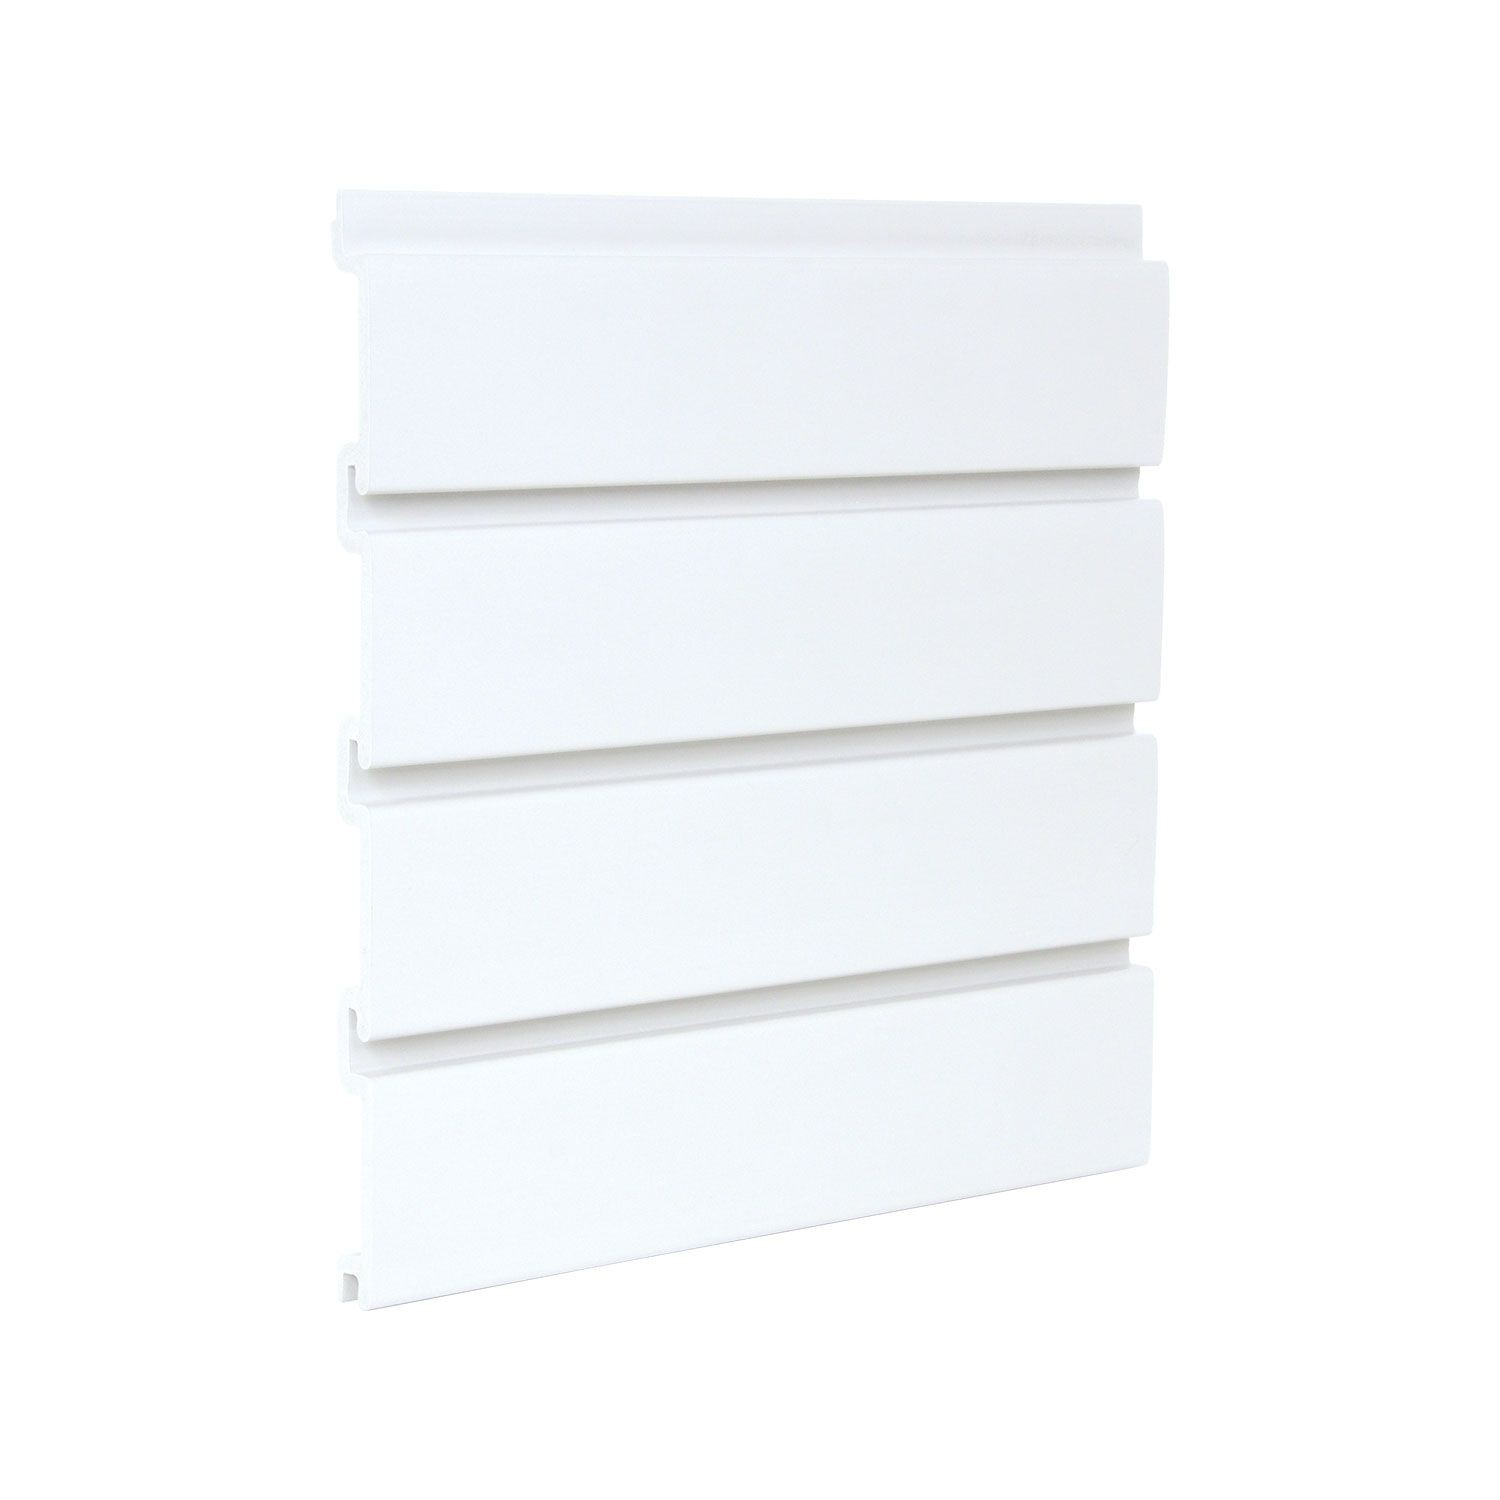 1' X 8' White Greatwall Panel 4 Pieces Per Box